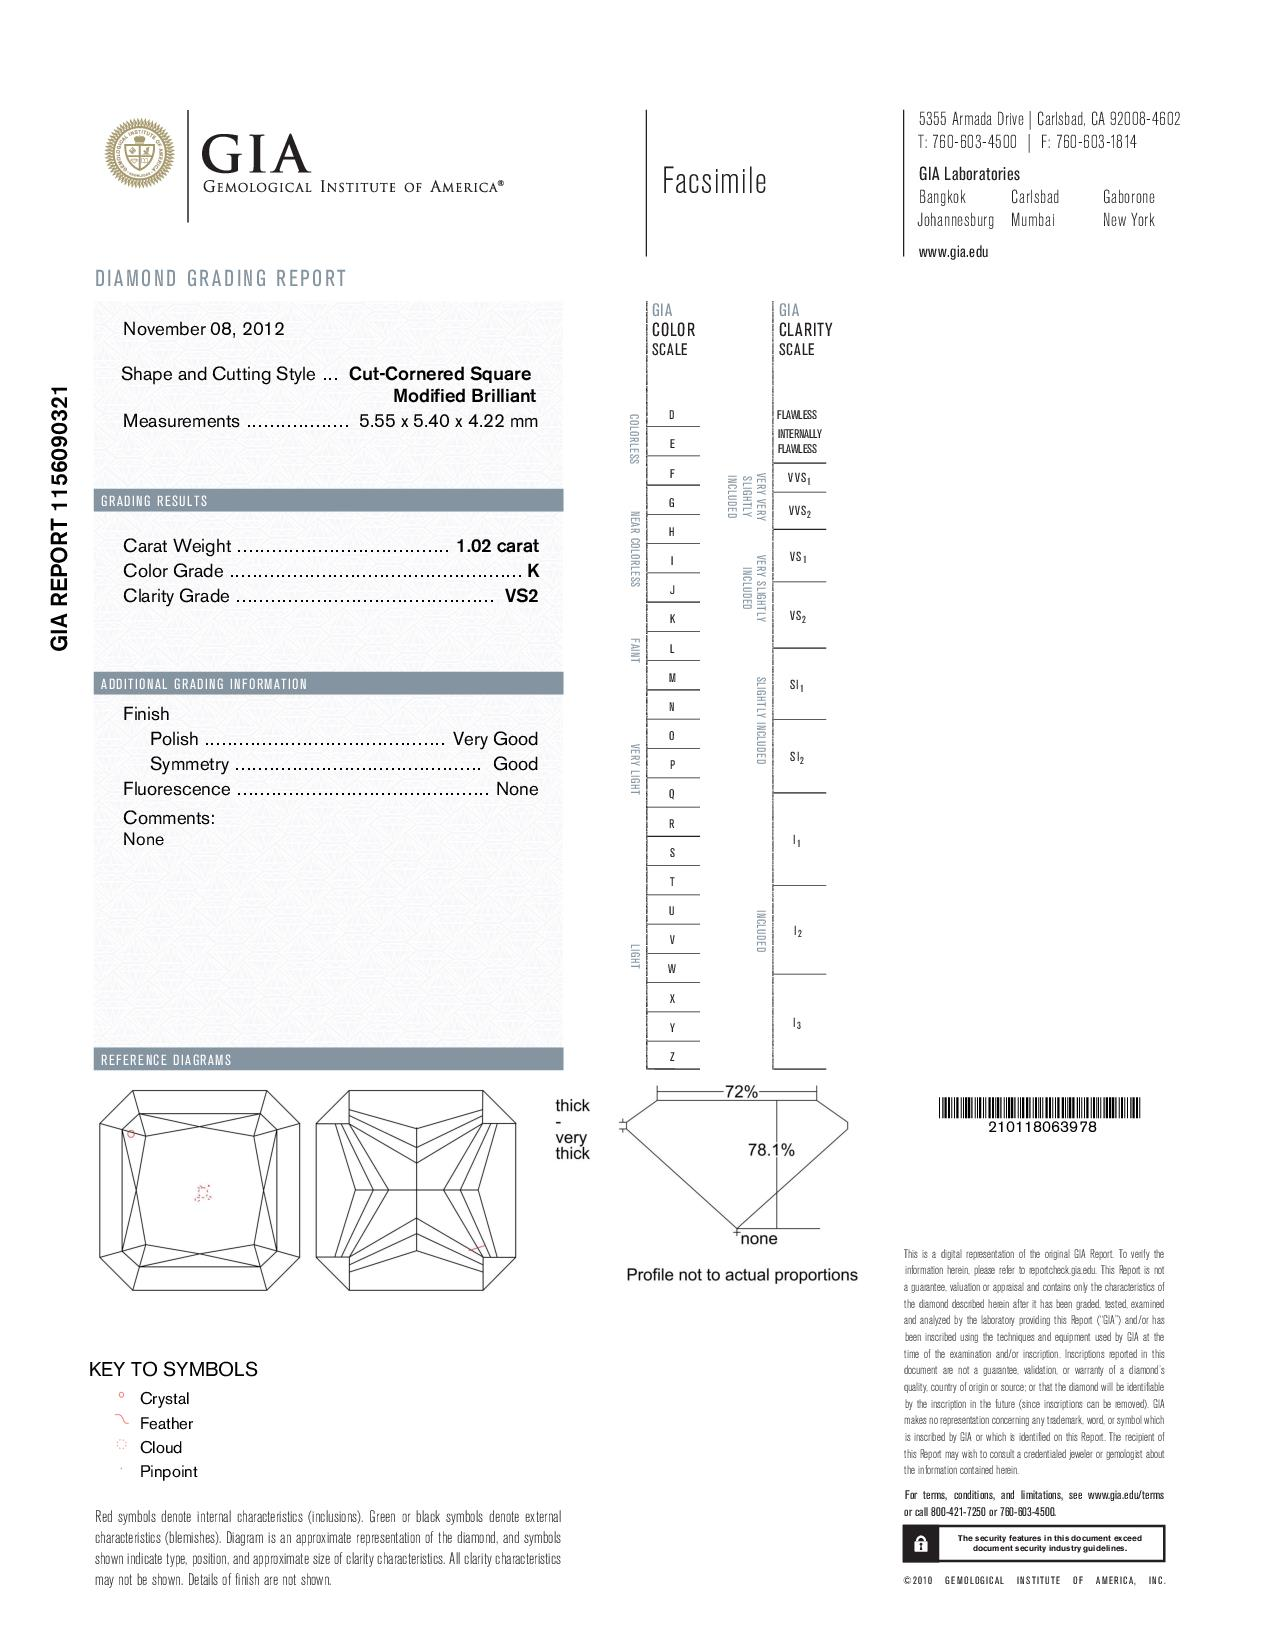 This is a 1.02 carat radiant shape, K color, VS2 clarity natural diamond accompanied by a GIA grading report.